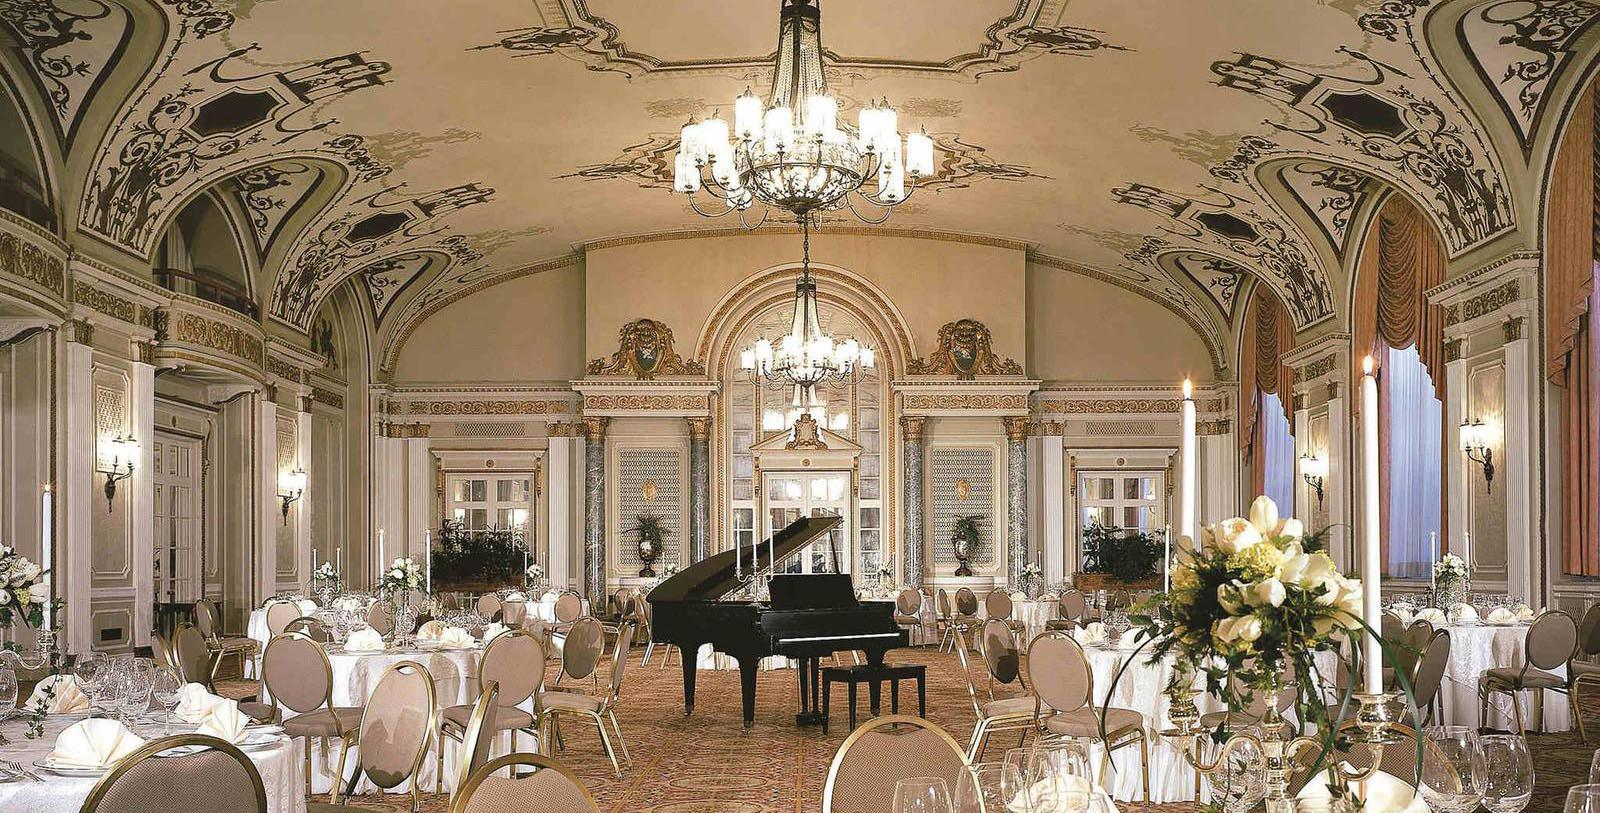 Image of ballroom set up for special event Fairmont Château Laurier, 1912, Member of Historic Hotels Worldwide, in Ottowa, Canada, Experience